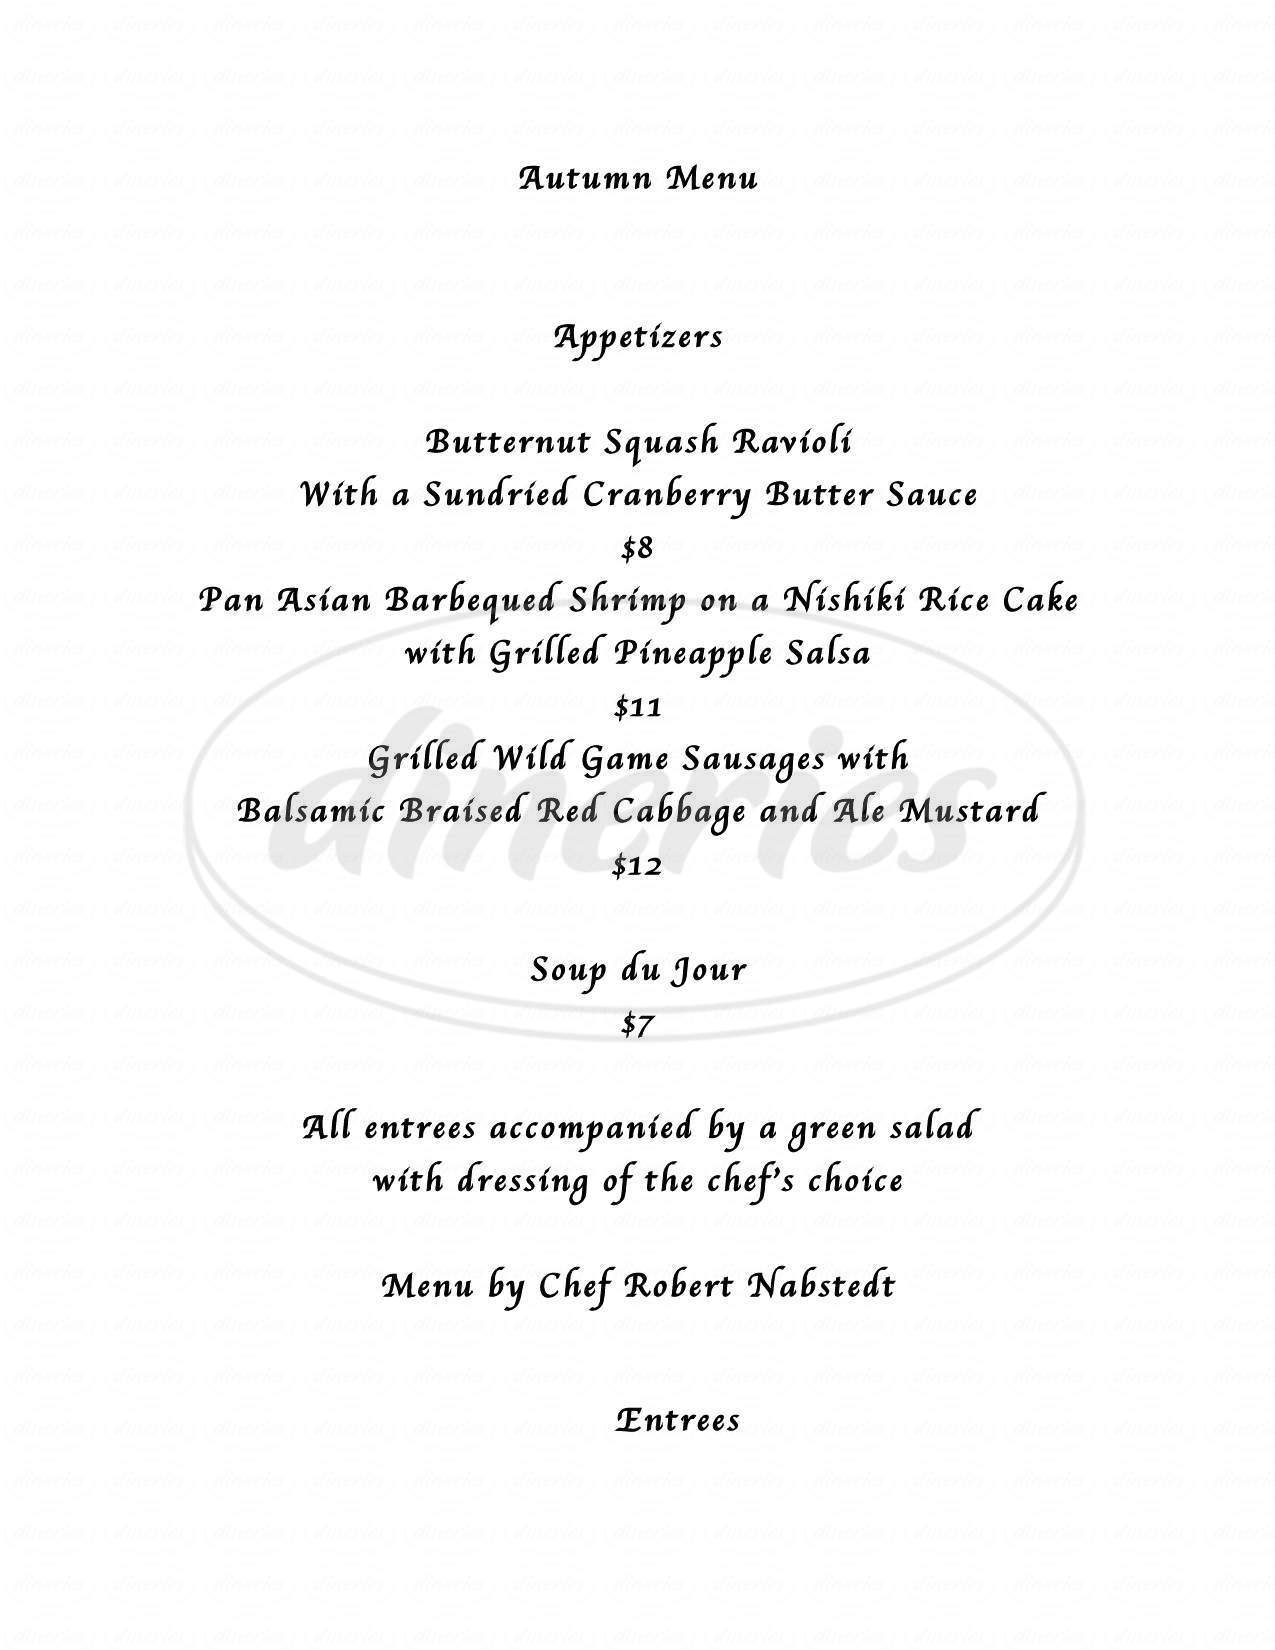 menu for Chesterfield Inn